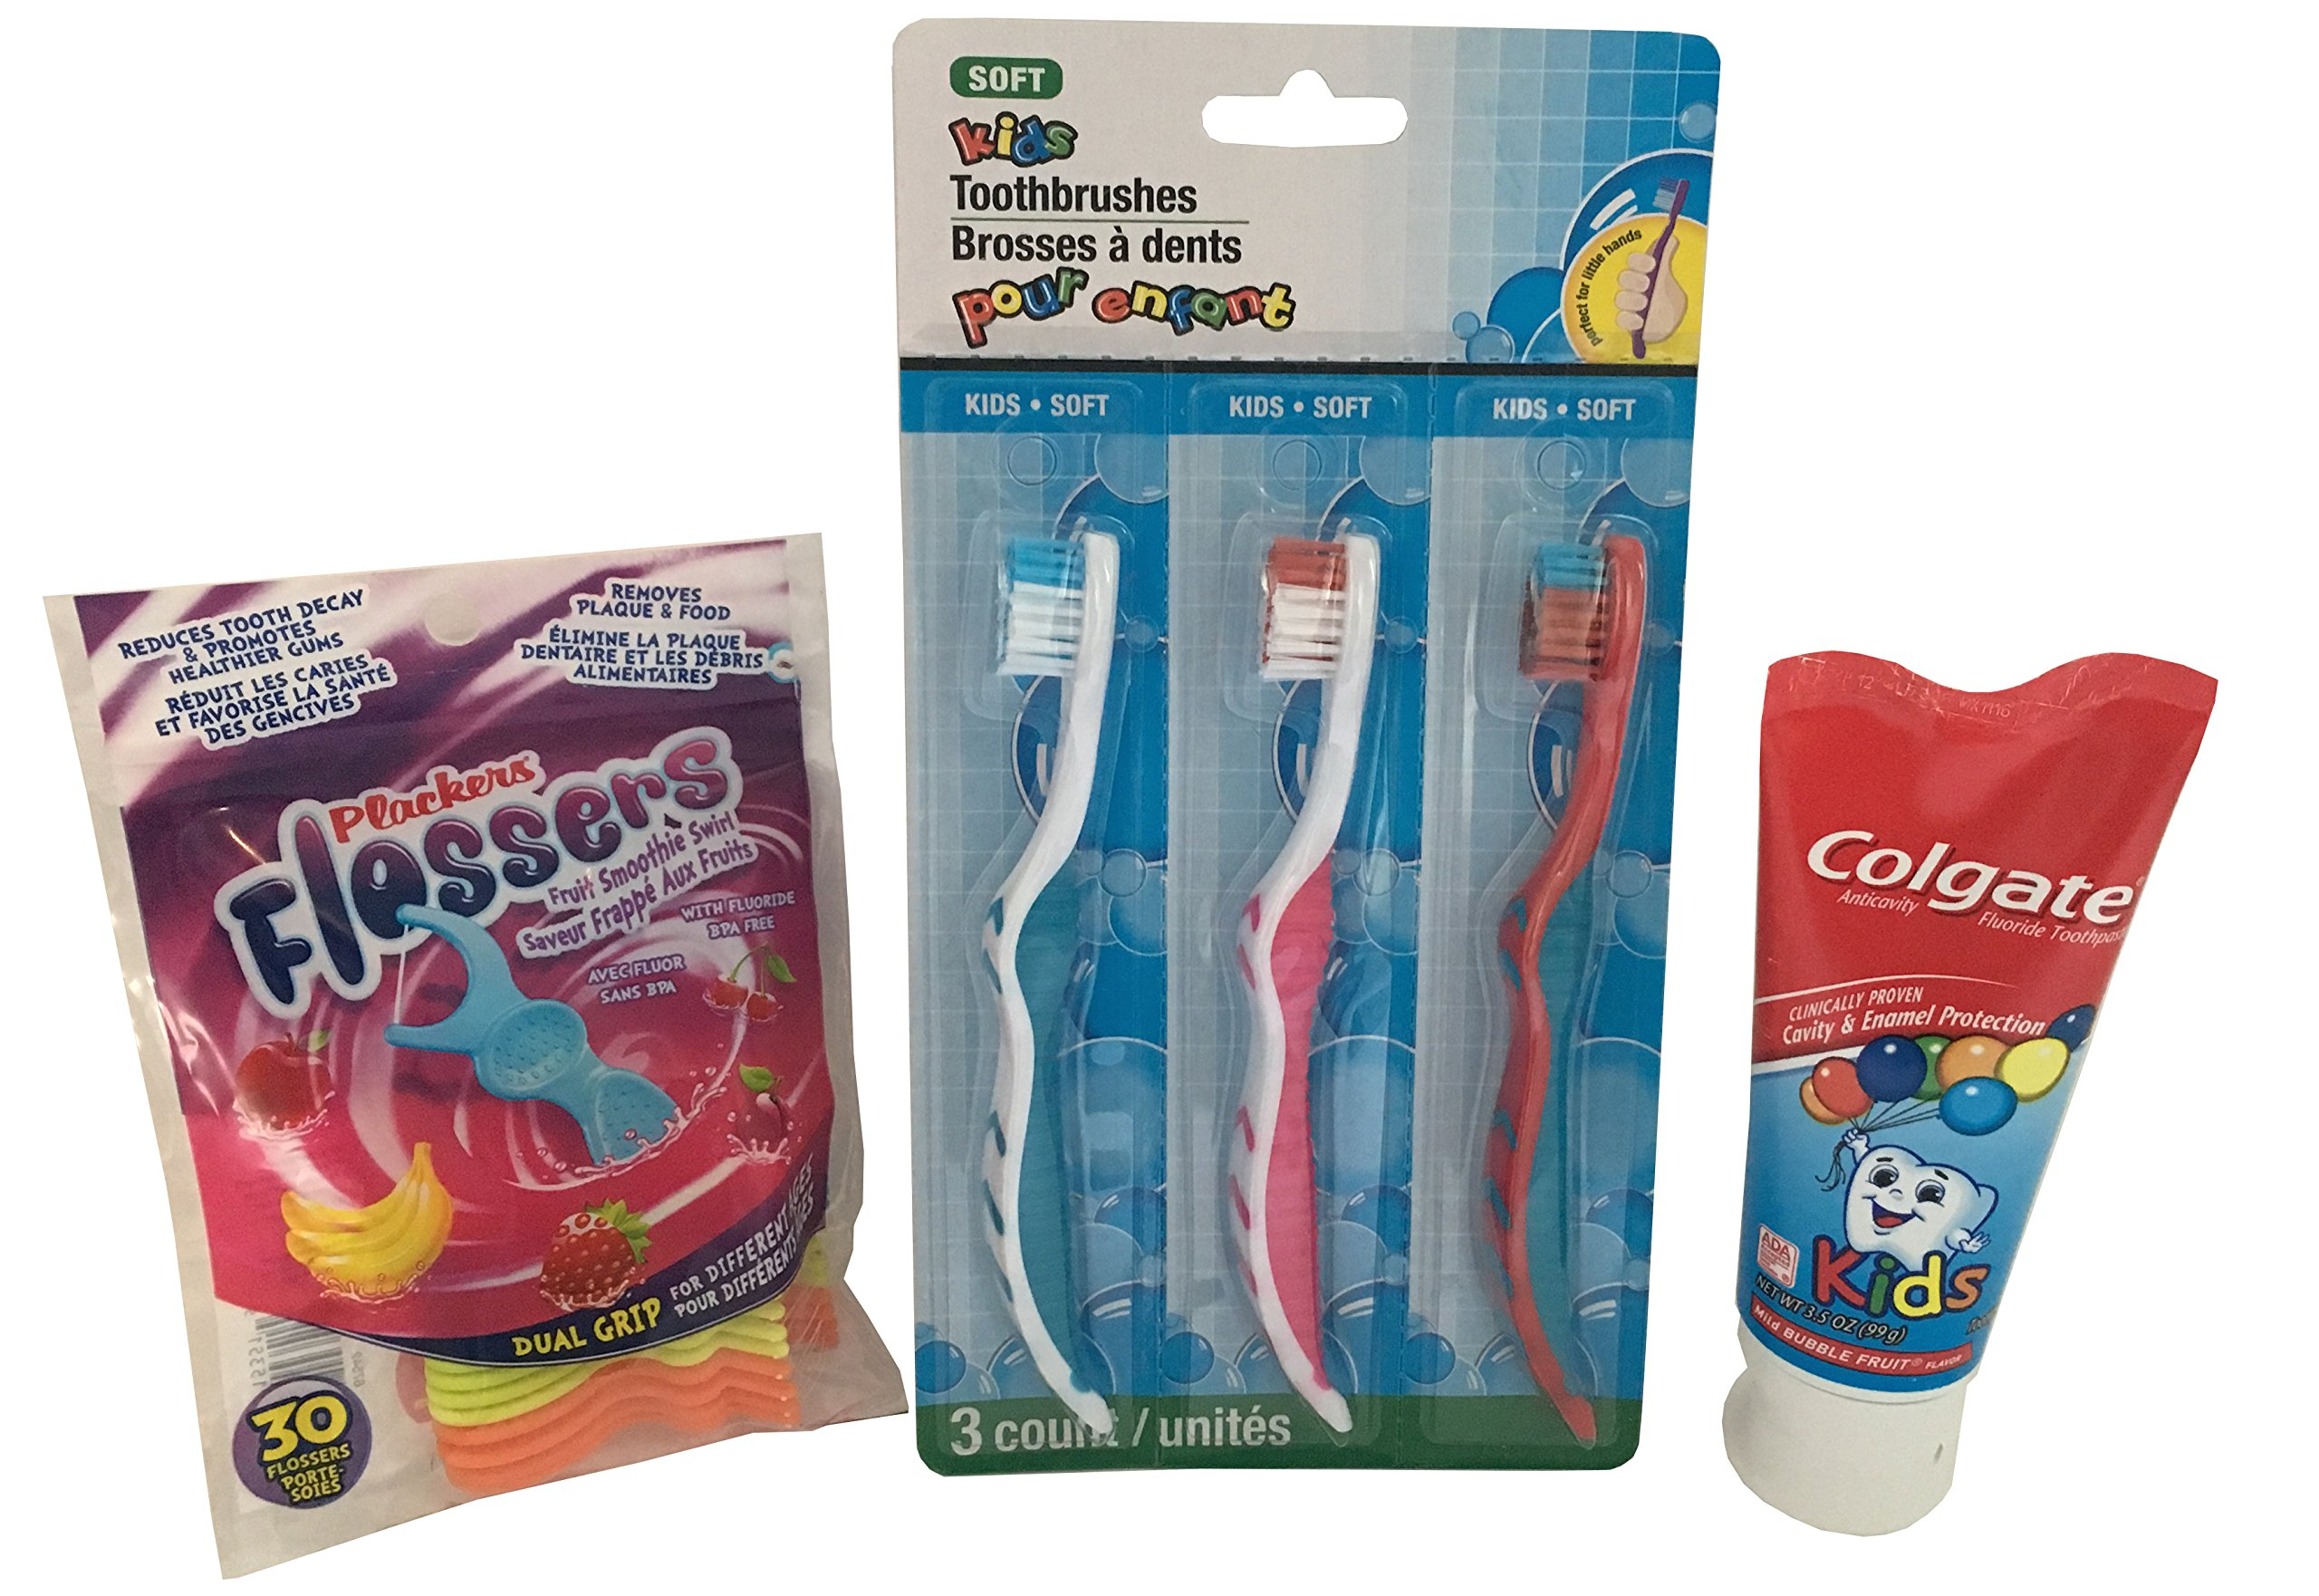 Kids Toothbrush Toothpaste and Flossers Kit - 3 Kids Soft Bristle Toothbrushes Designed for Smaller Teeth & Gums Colgate Bubble Fruit Toothpaste & Kids Flossers with Fluoride Fruit Smoothie Swirl